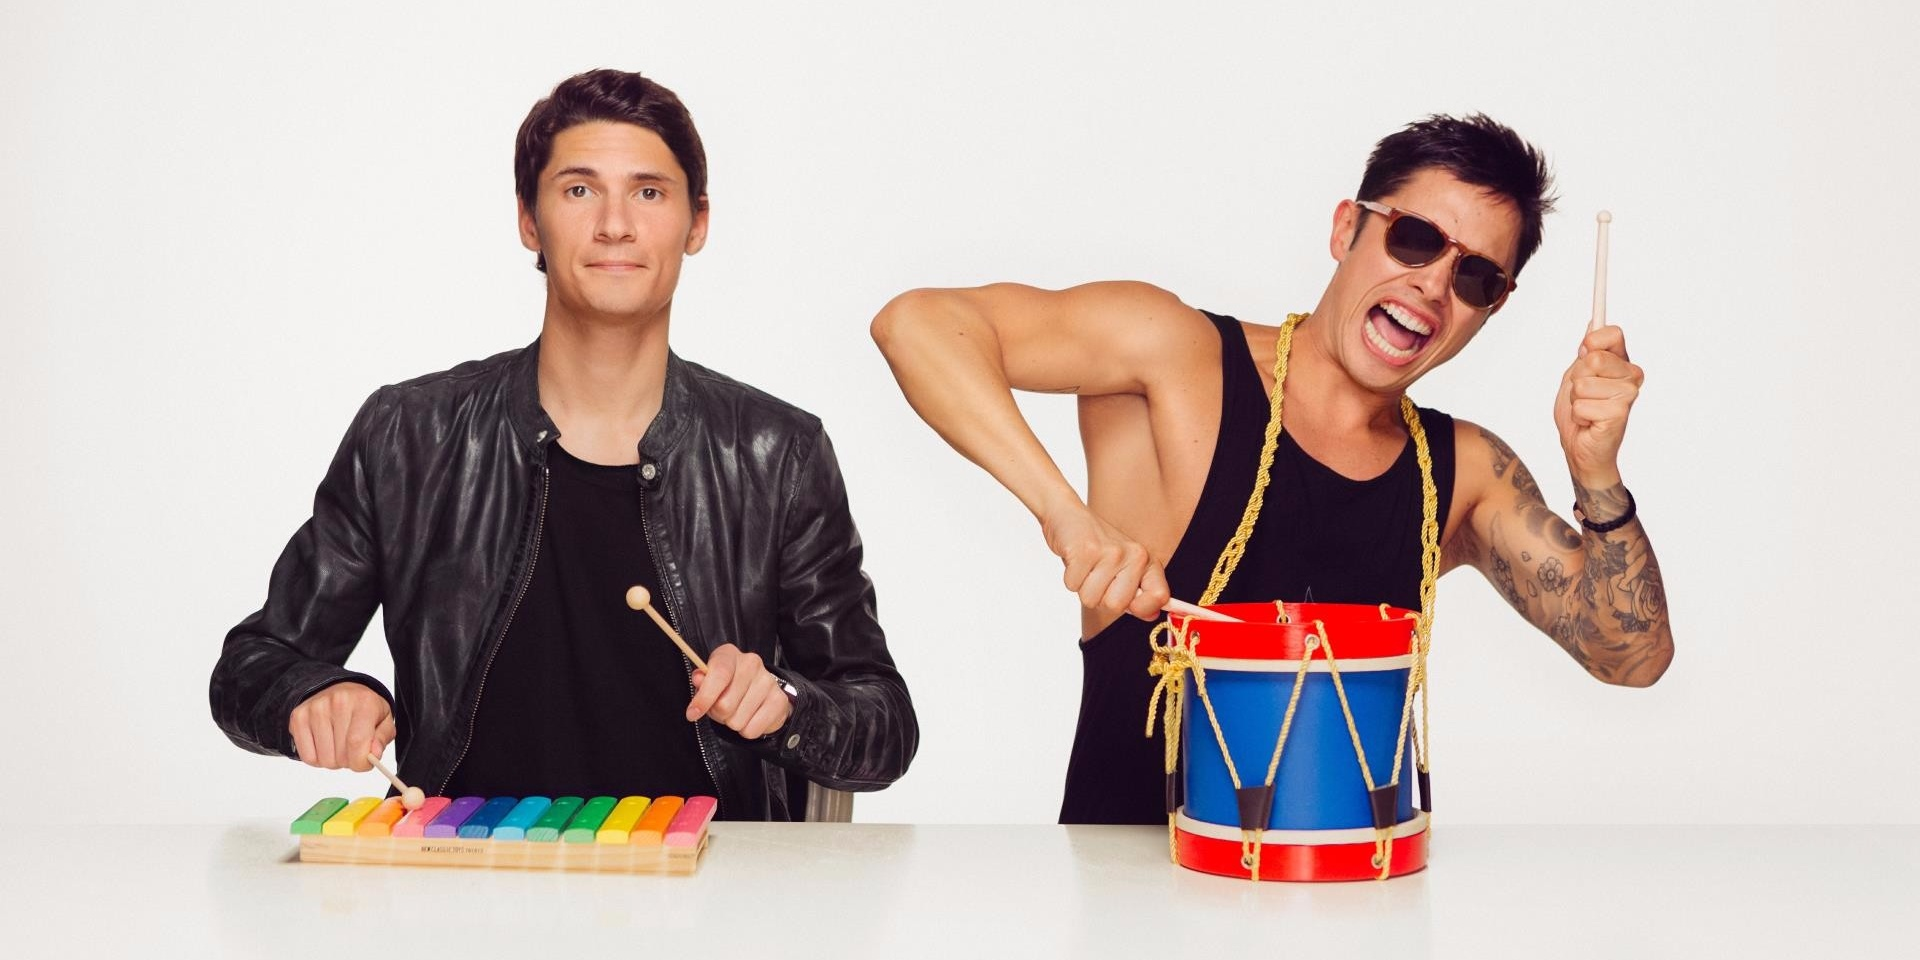 Sentosa Siloso Beach Party to feature Bassjackers as headliners